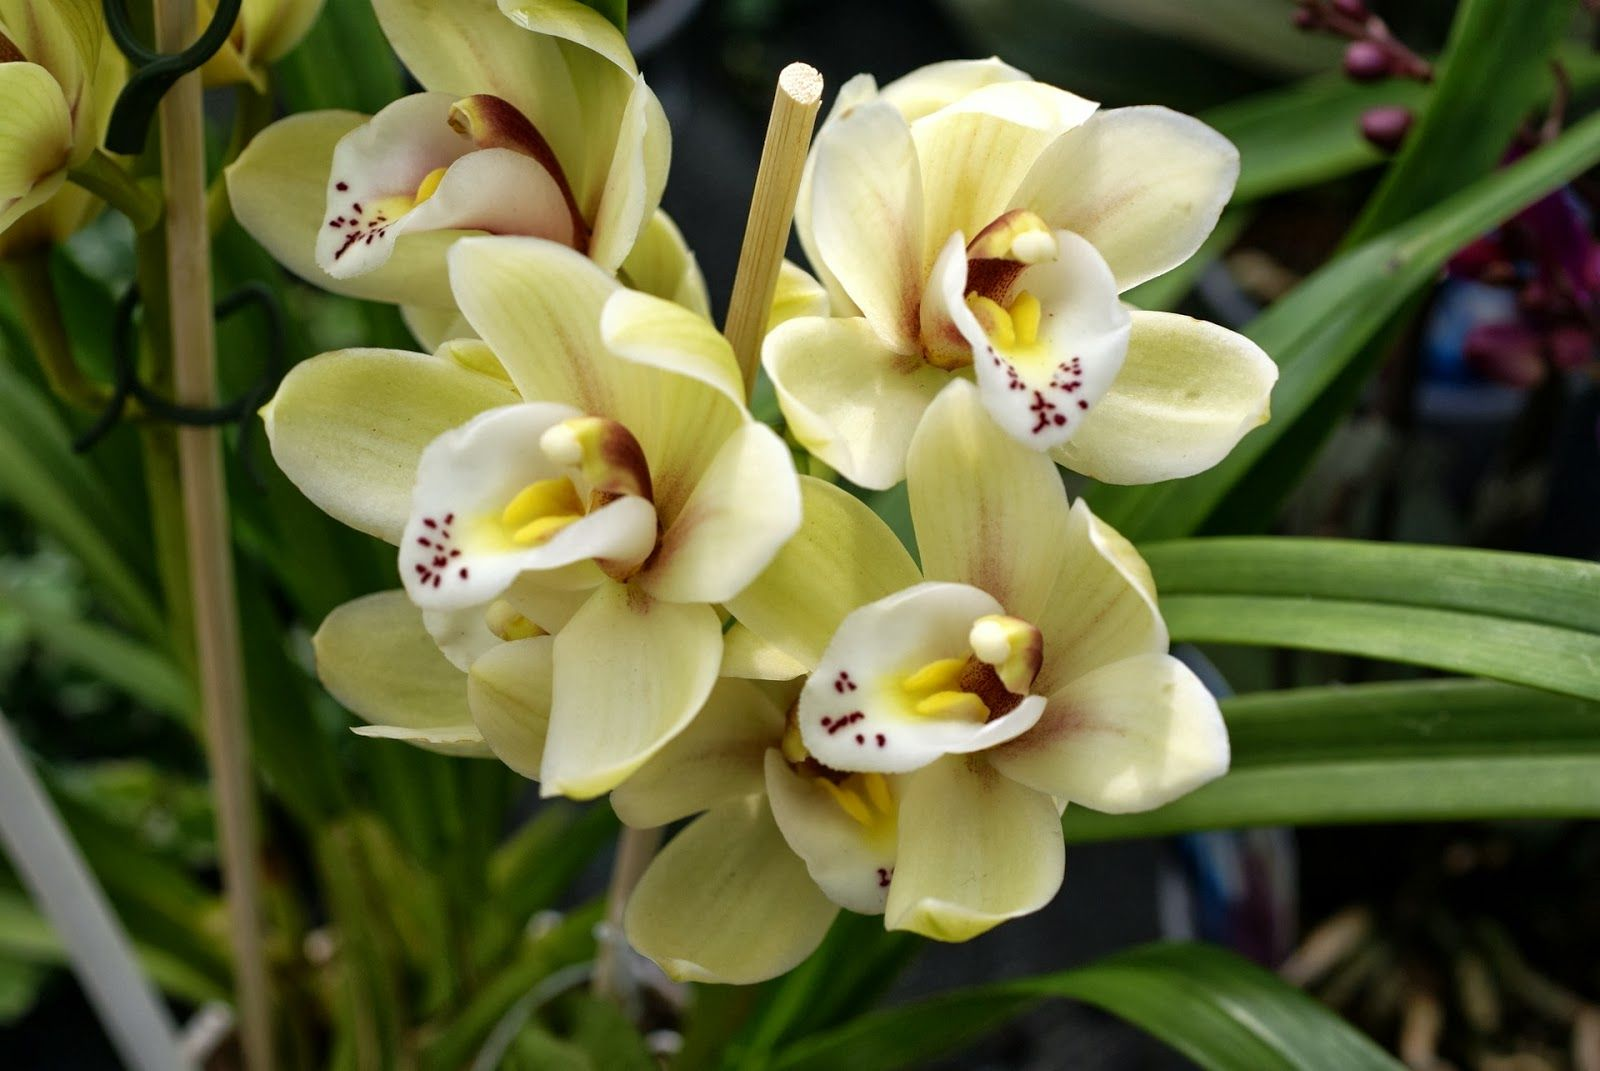 403 Forbidden Rare Orchids Cattleya Orchid Orchid Varieties